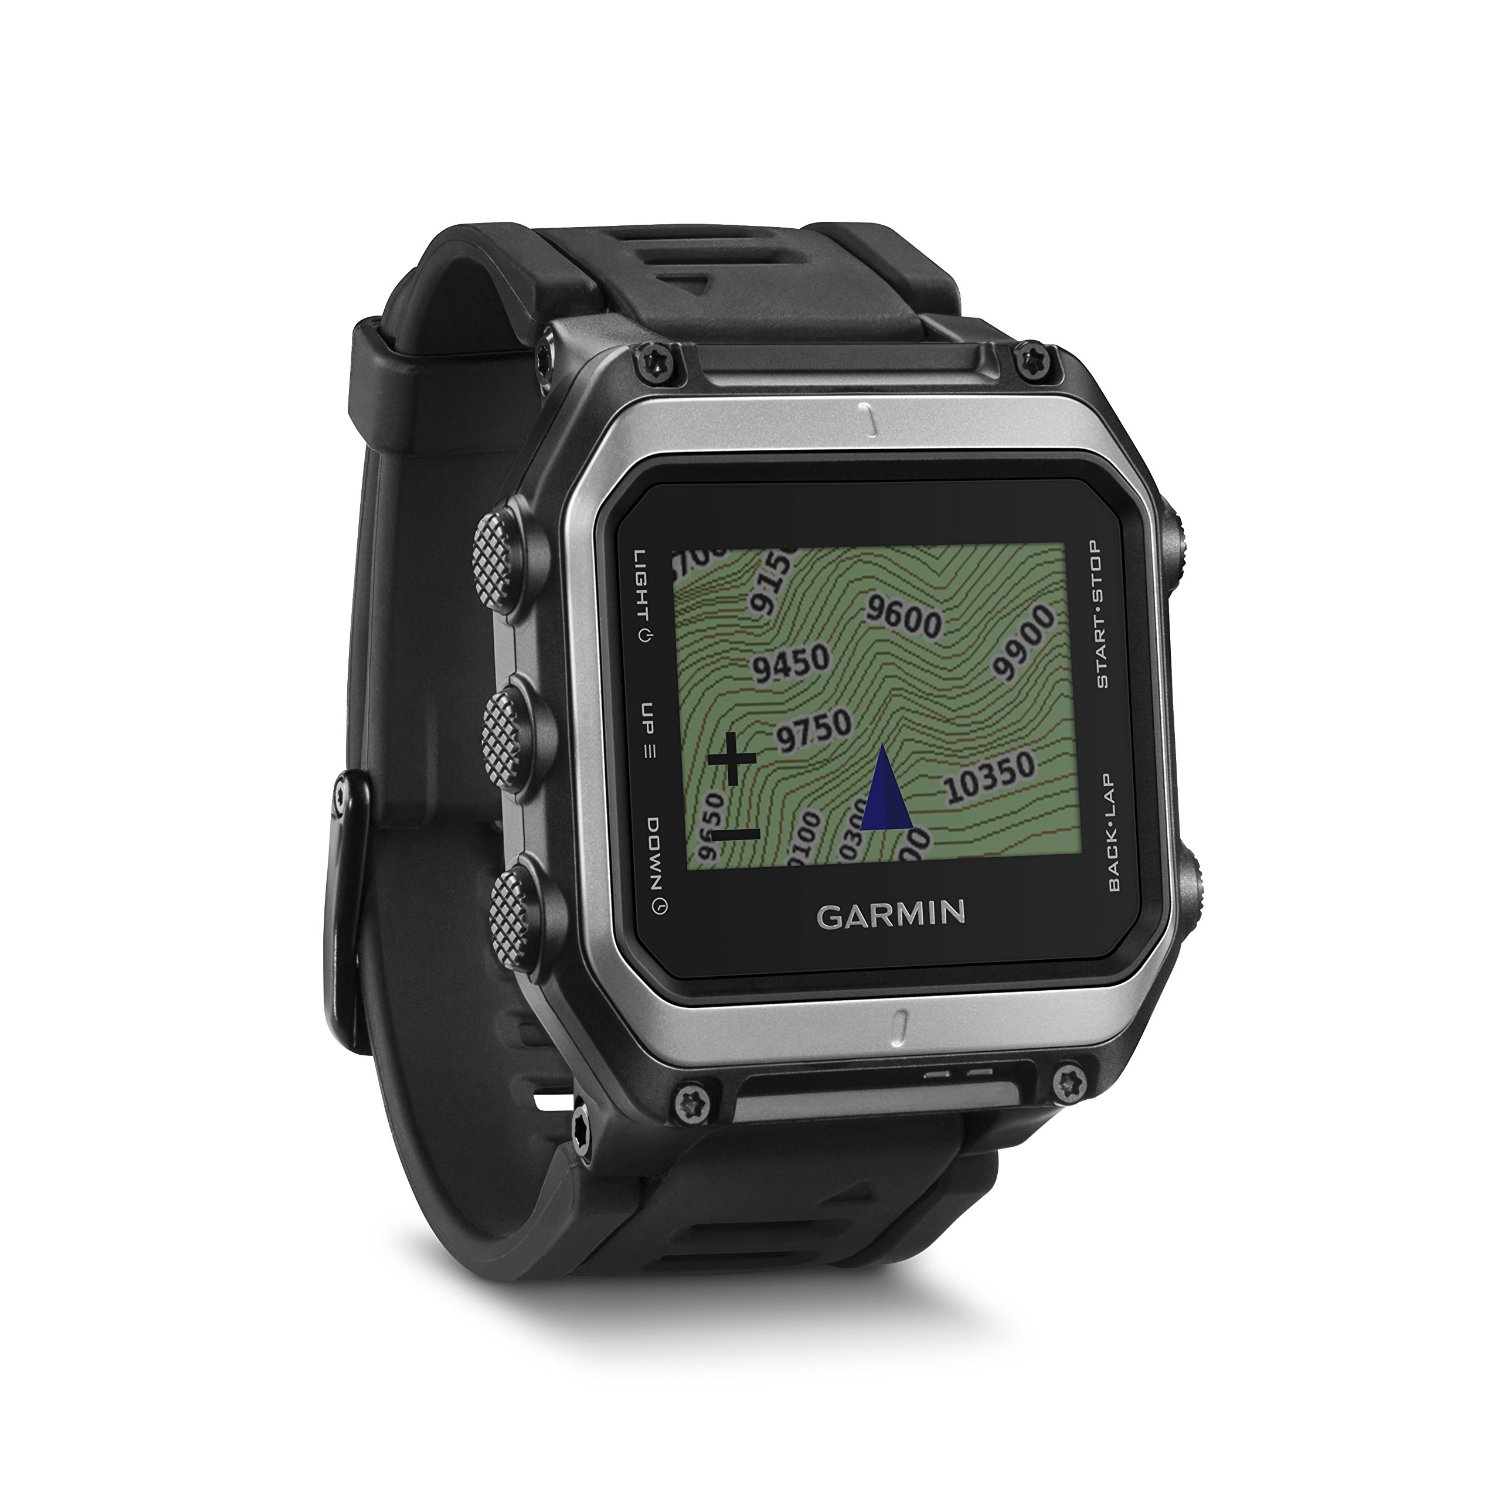 Garmin epix gps outdoor smart watch with topo europe maps sustuu for Watches with gps